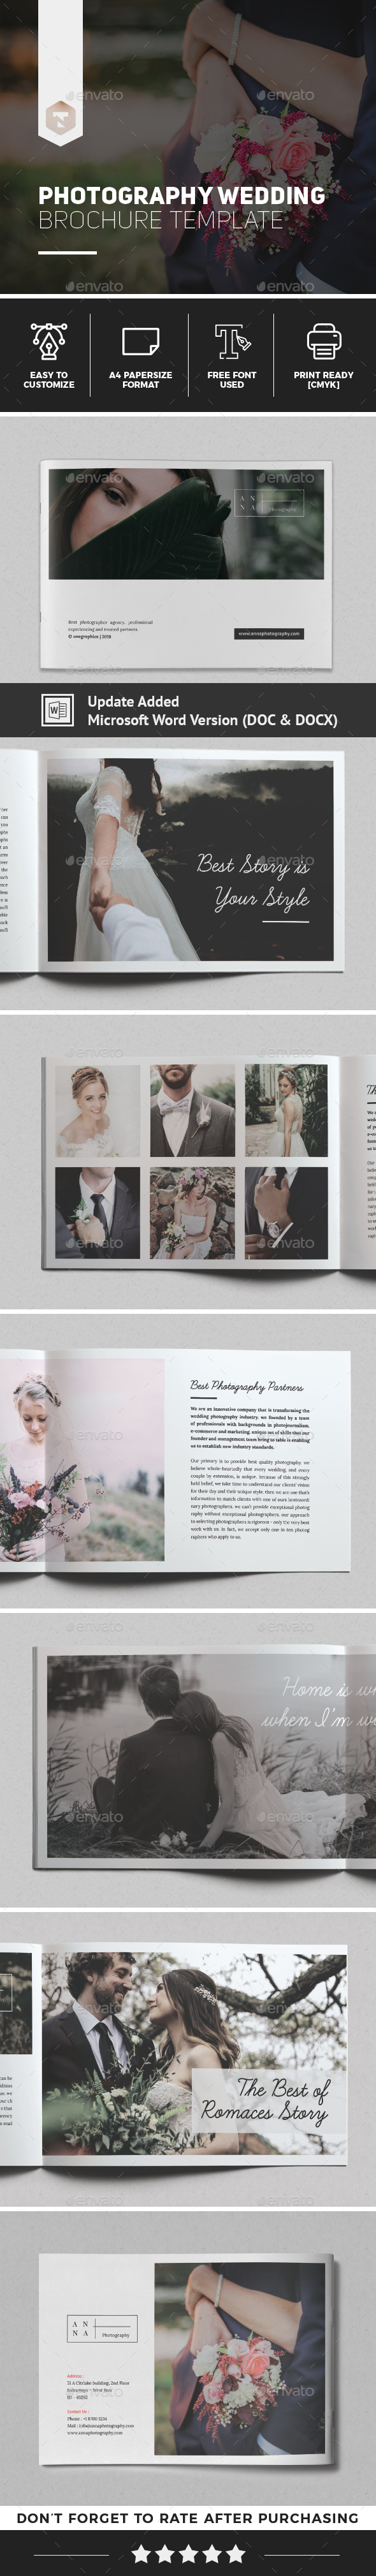 Anna Wedding Photography Brochure Template - Brochures Print Templates